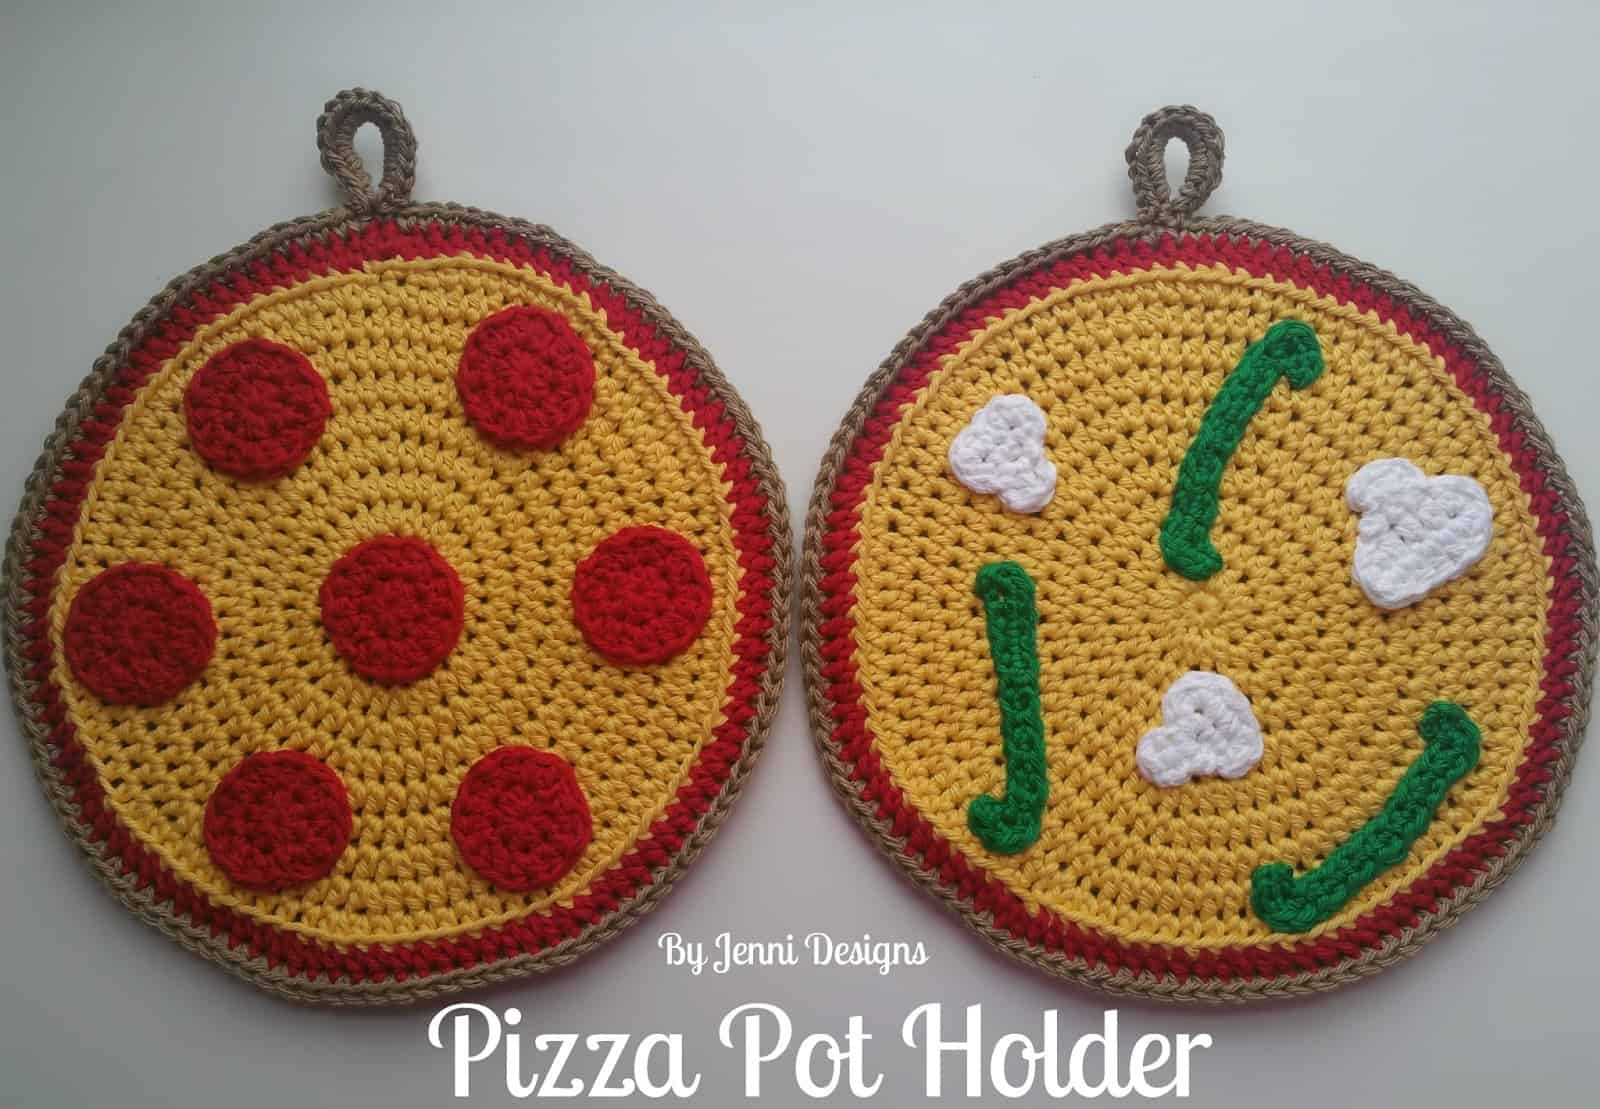 Pizza pot holder